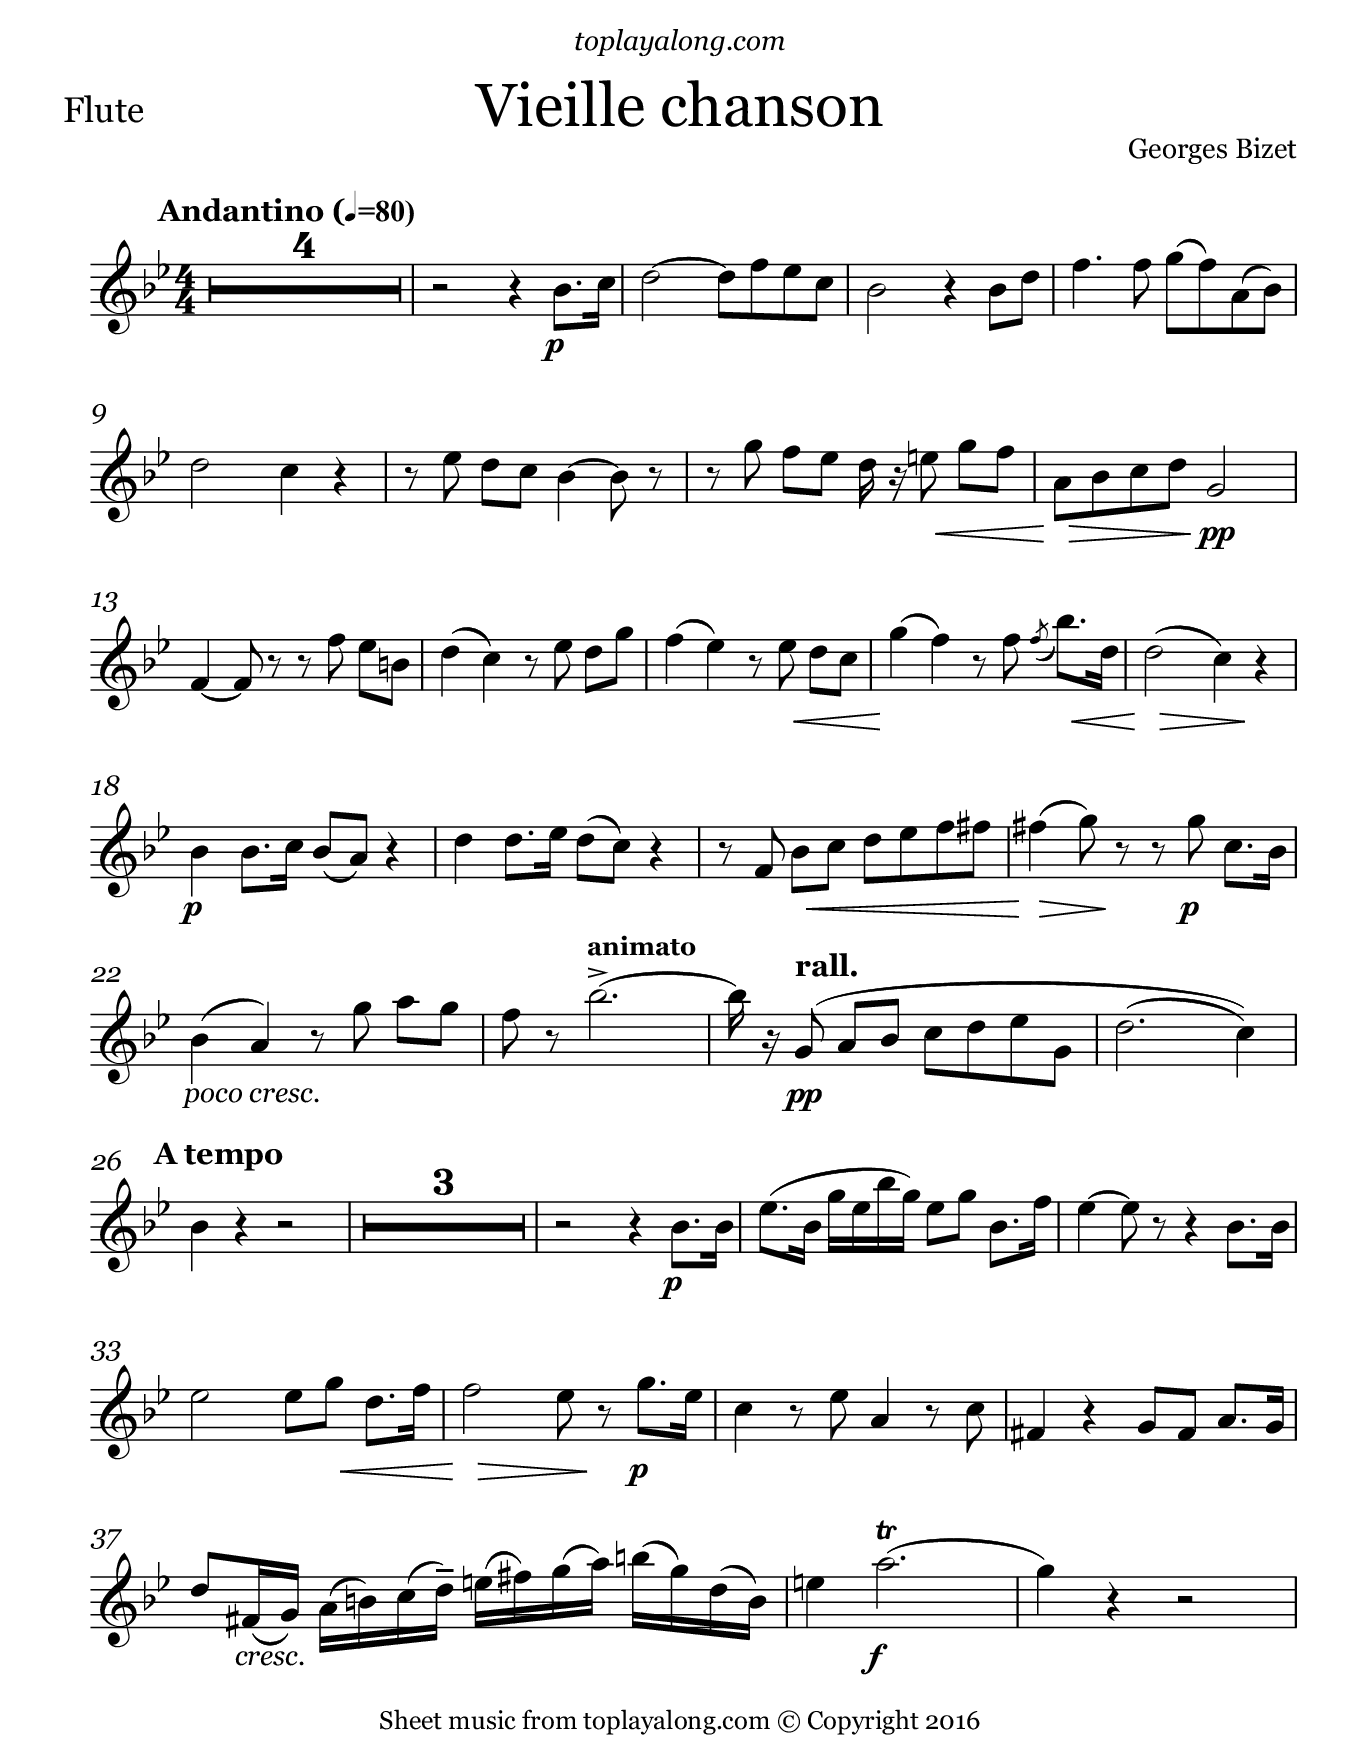 Vieille chanson by Bizet. Sheet music for Flute, page 1.